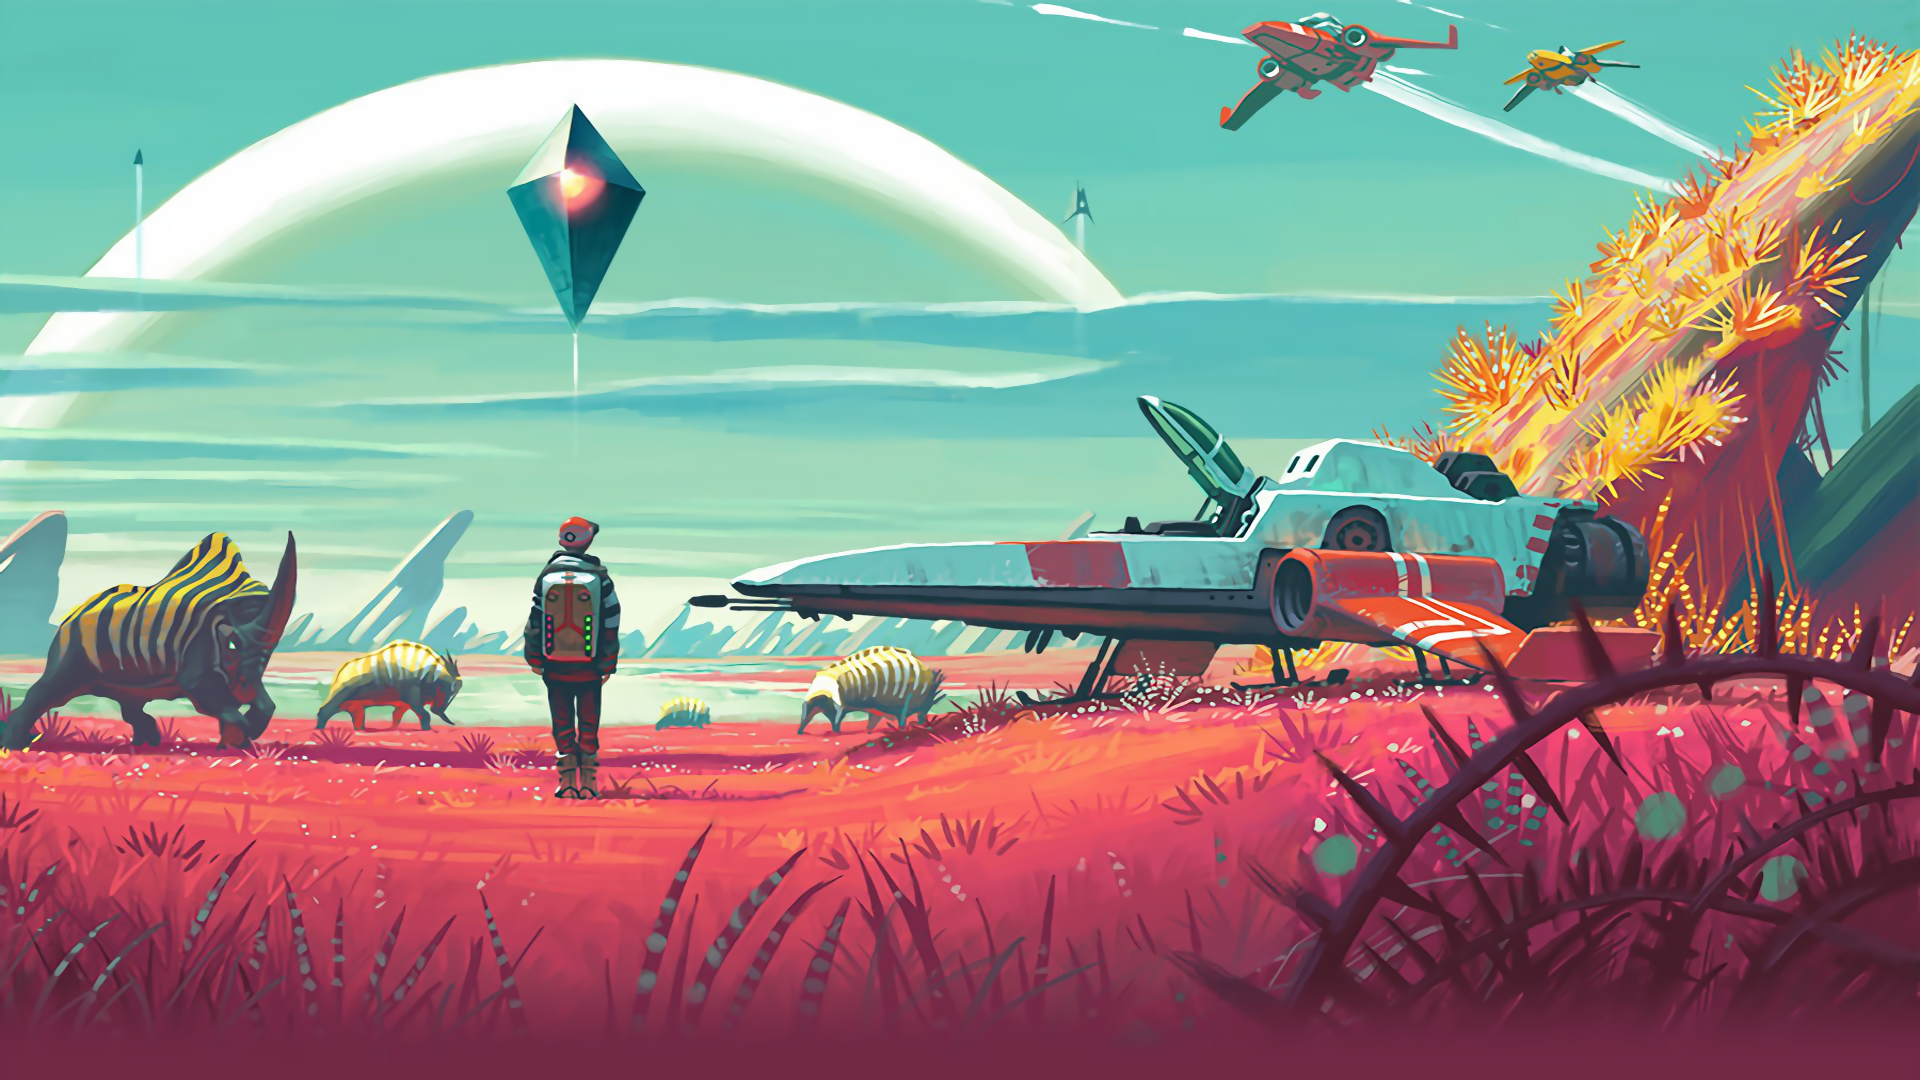 No Man's Sky is set to release next month.